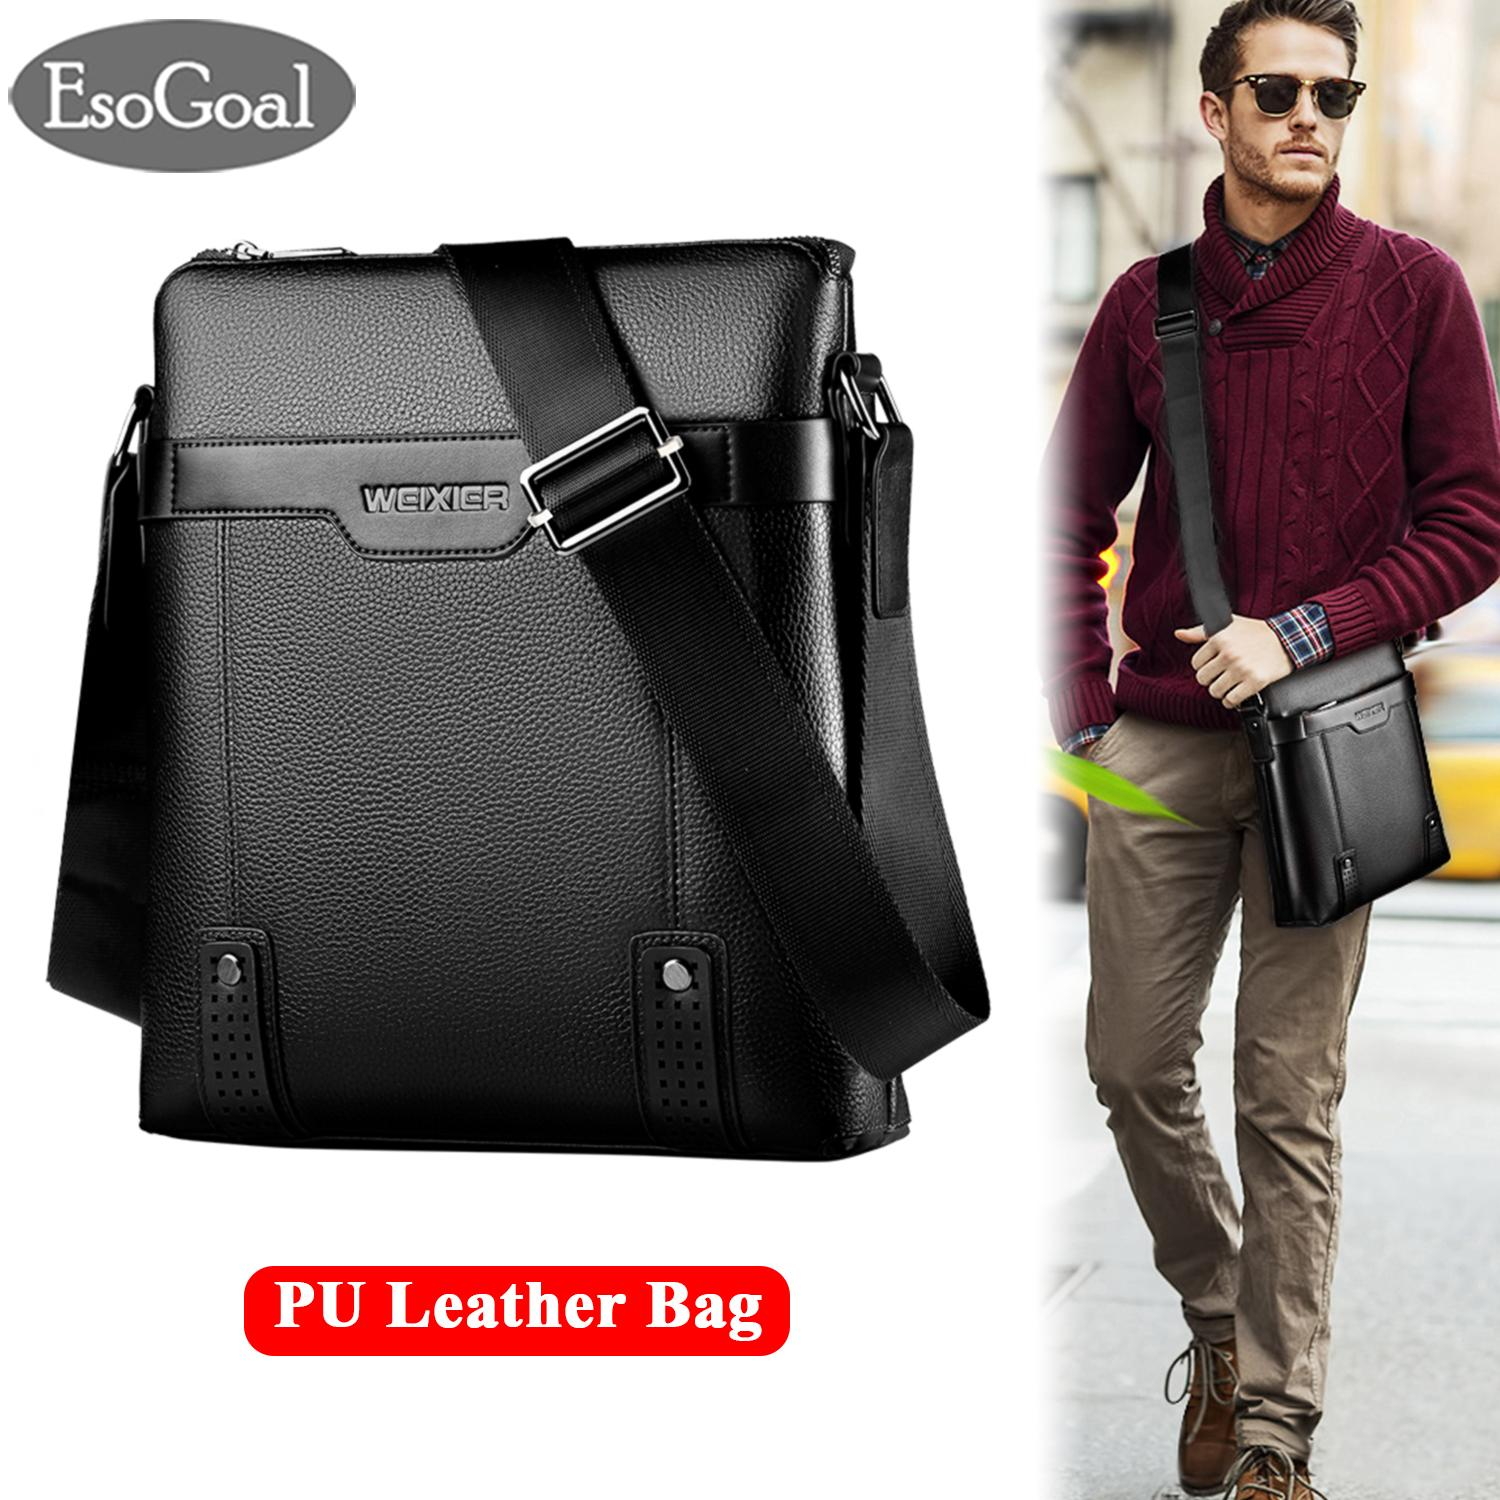 EsoGoal Men Messenger Bag PU Leather Sling Shoulder Crossbody Men Bag Handbag Men Casual Business Fashion Bag